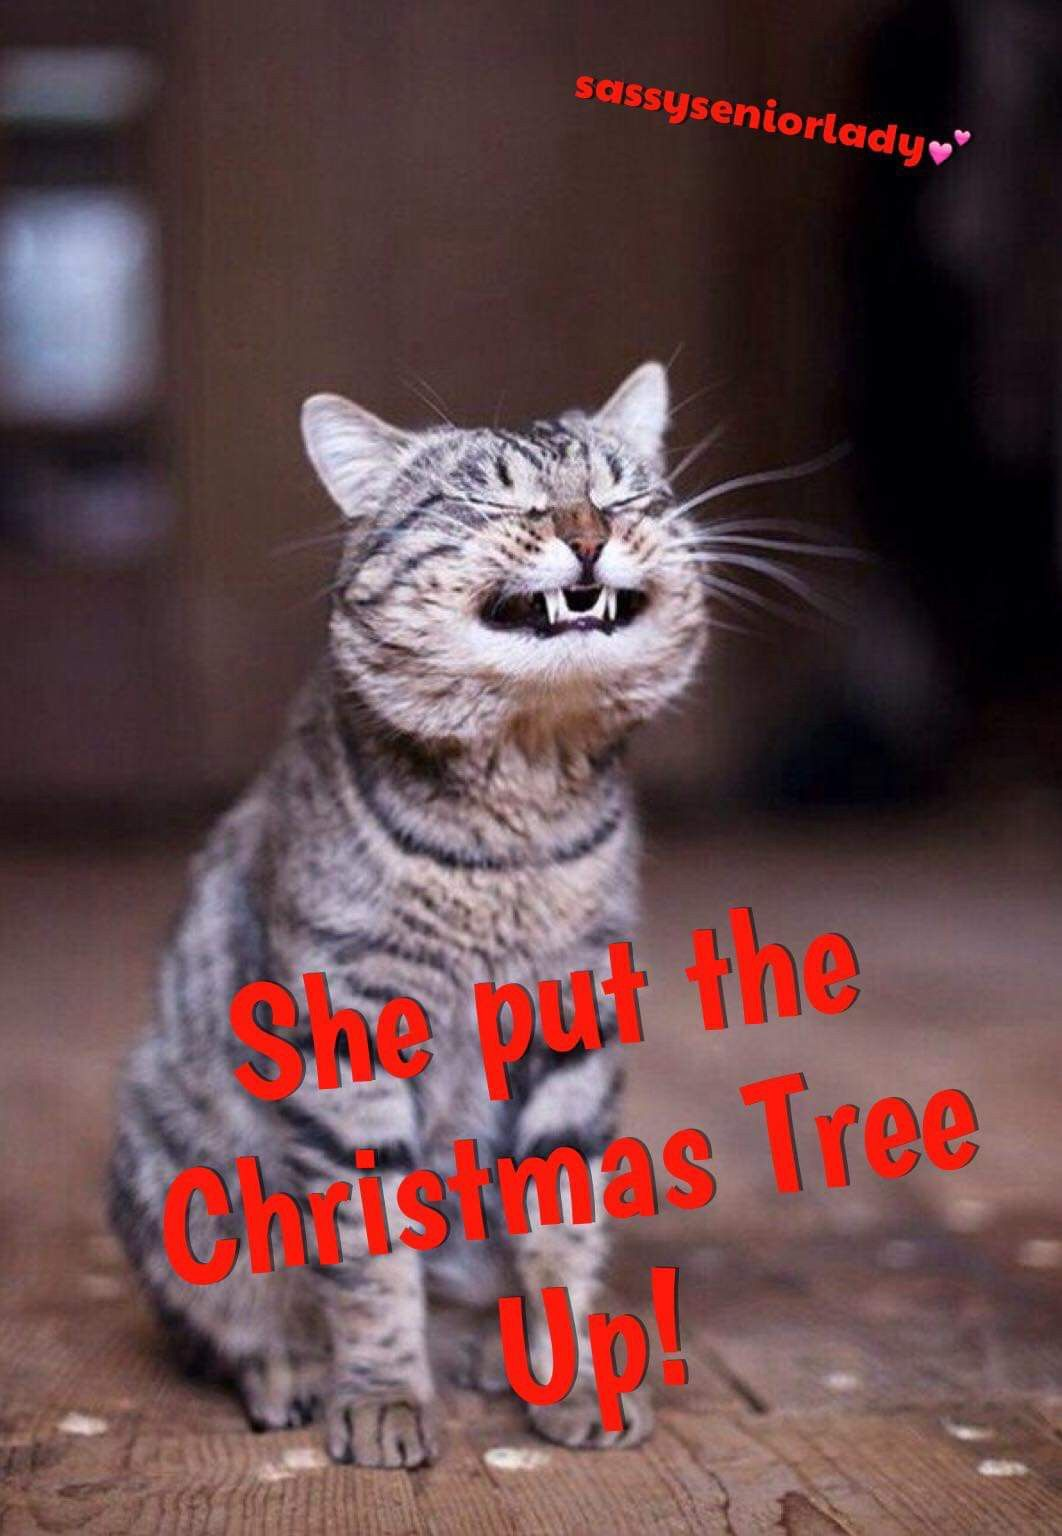 Pin by Sheri Powell on Christmas Cheer | Funny, Animals, Cats